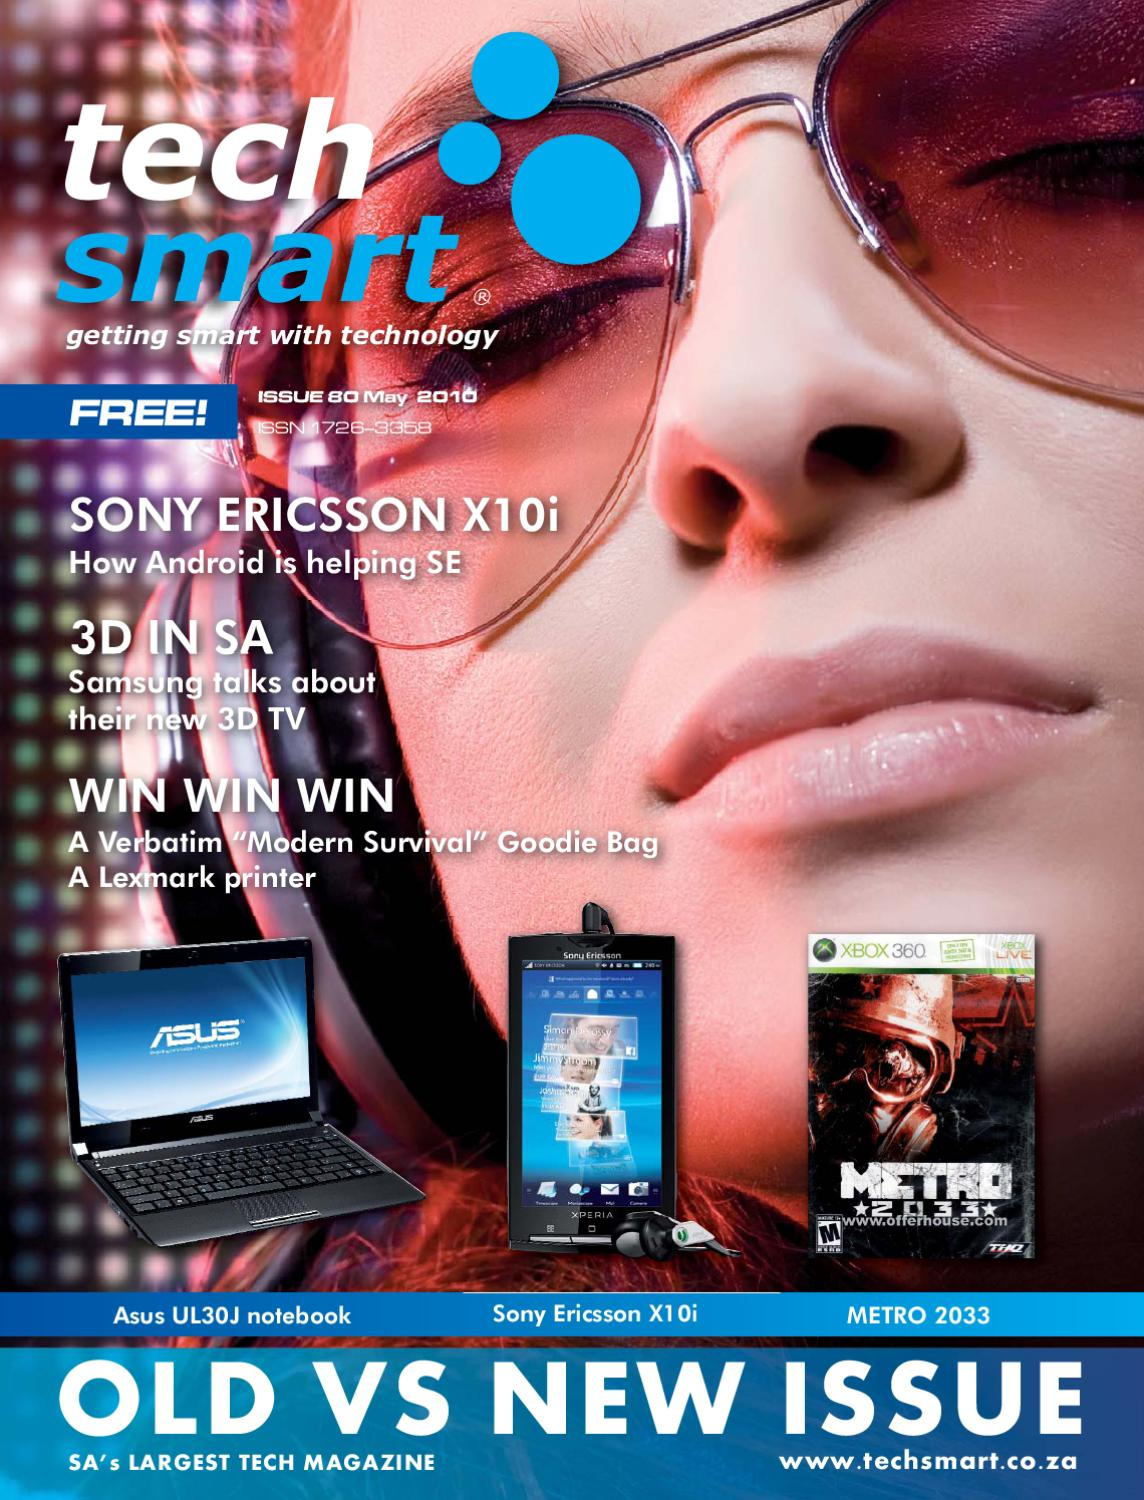 Free download symbian application for nokia 5800.